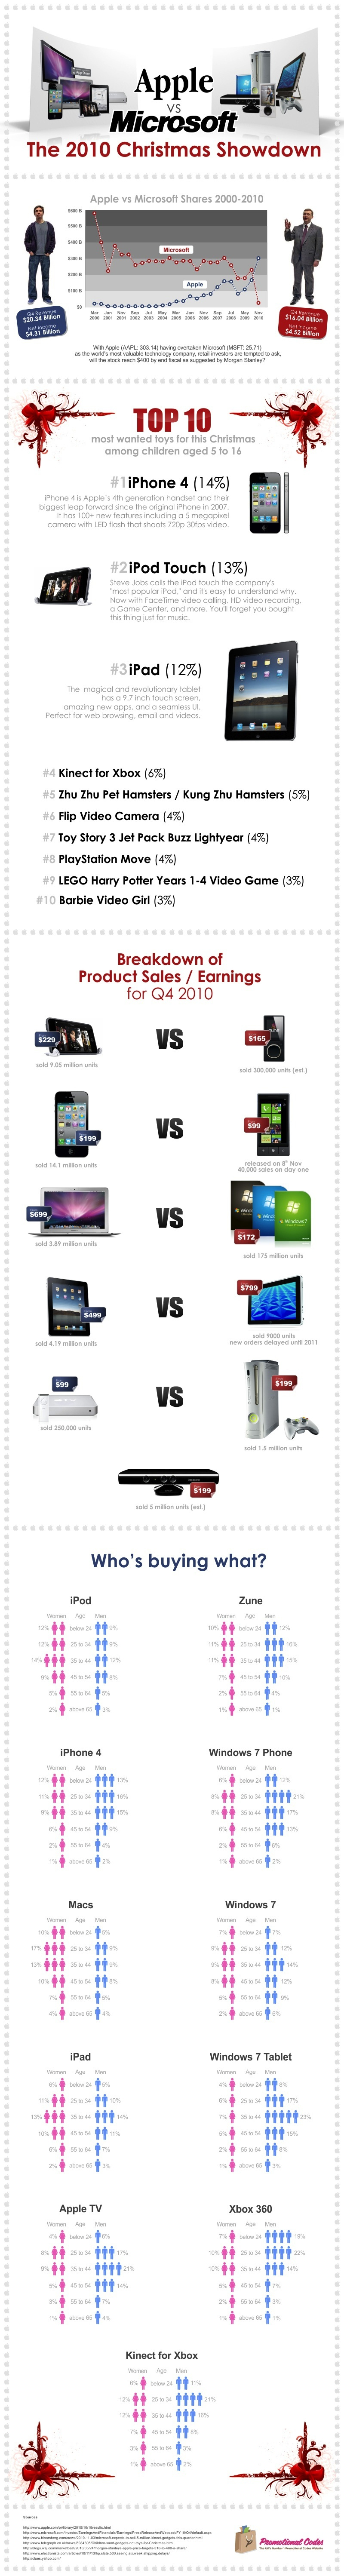 apple vs microsoft christmas sales